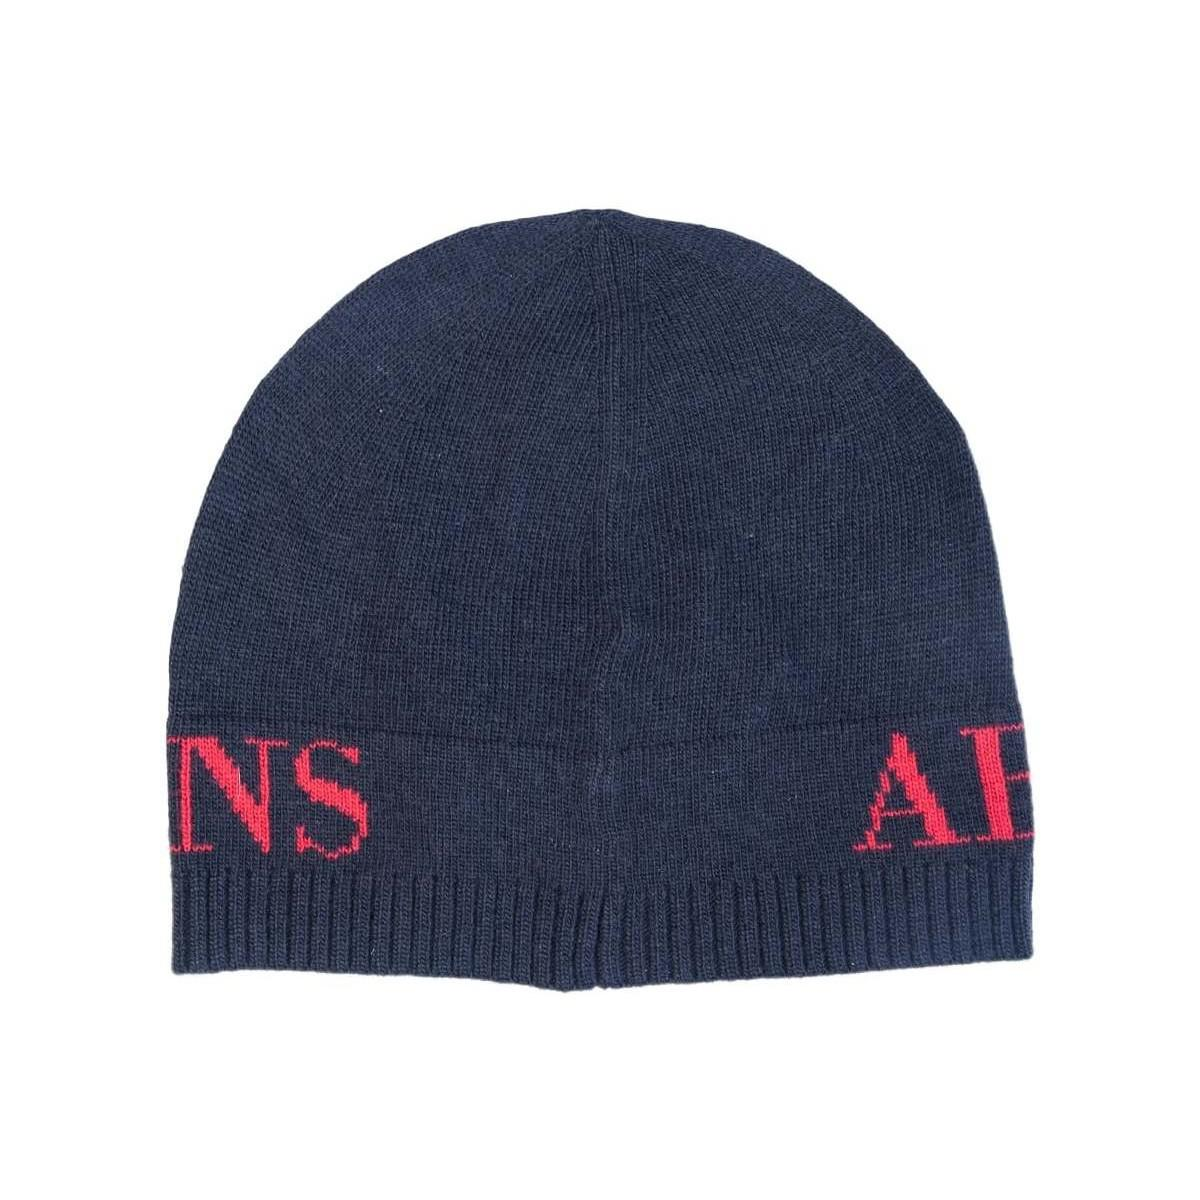 0fd7d5a1581 Armani Jeans - Gift Set Hat And Scarf 937503 Cc783 Men s Beanie In Blue for  Men. View fullscreen